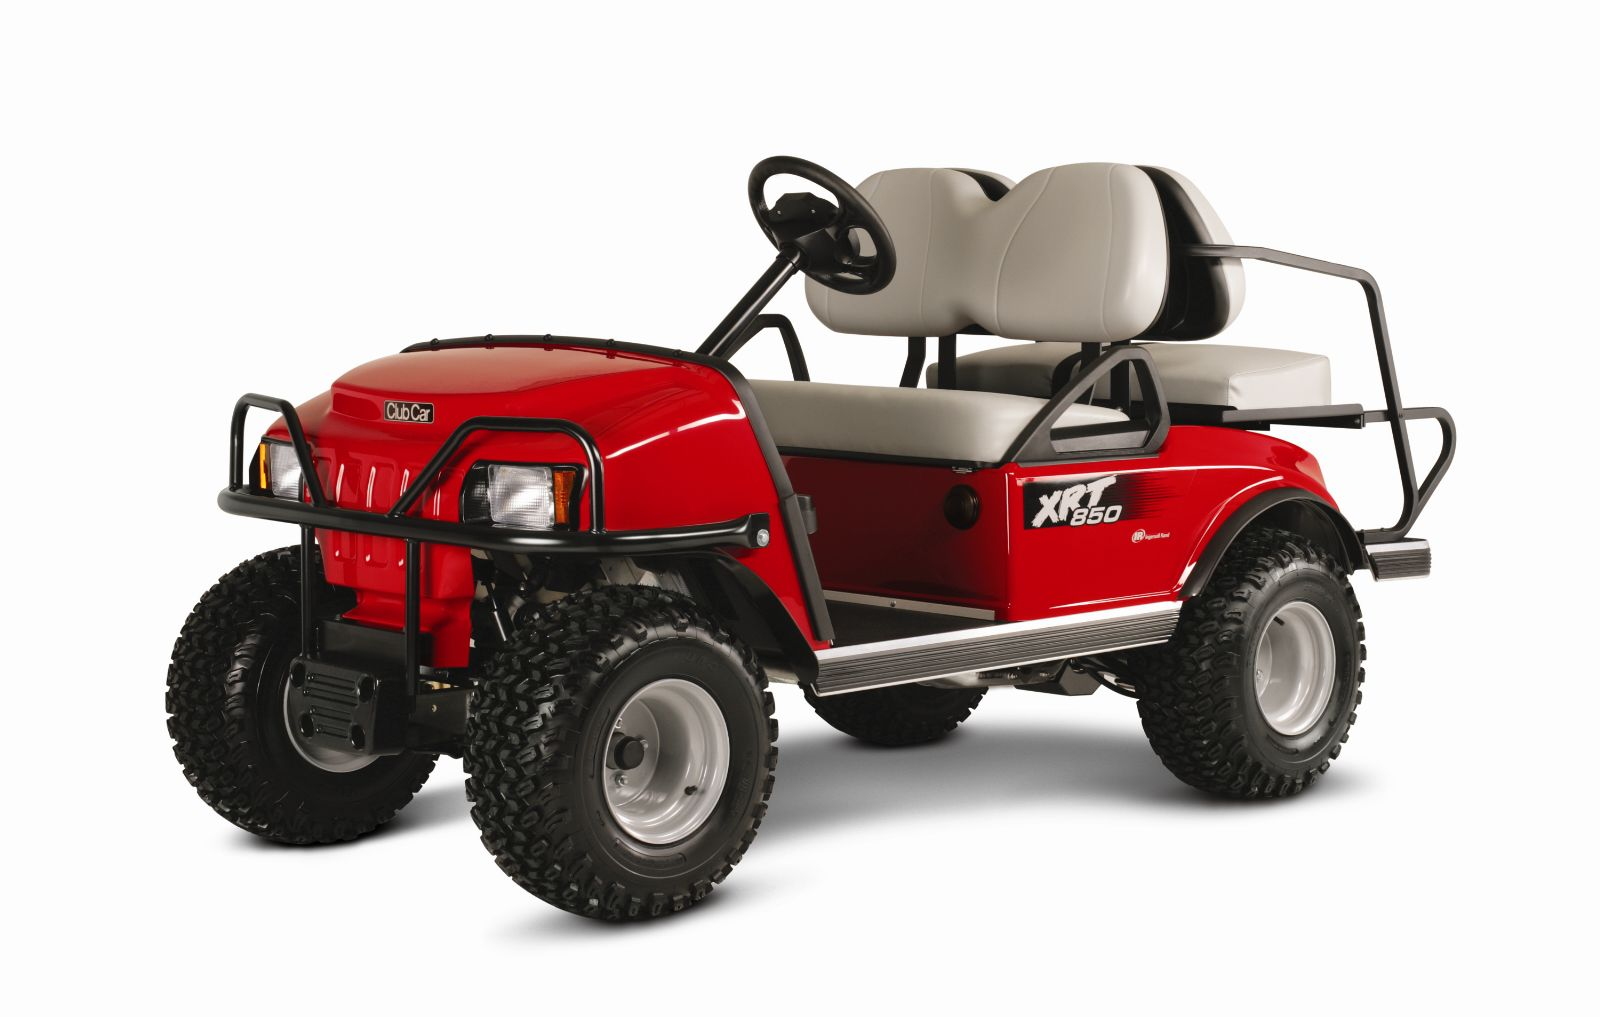 Club Car XRT850 utility vehicles will soon feature a new Subaru EFI engine.